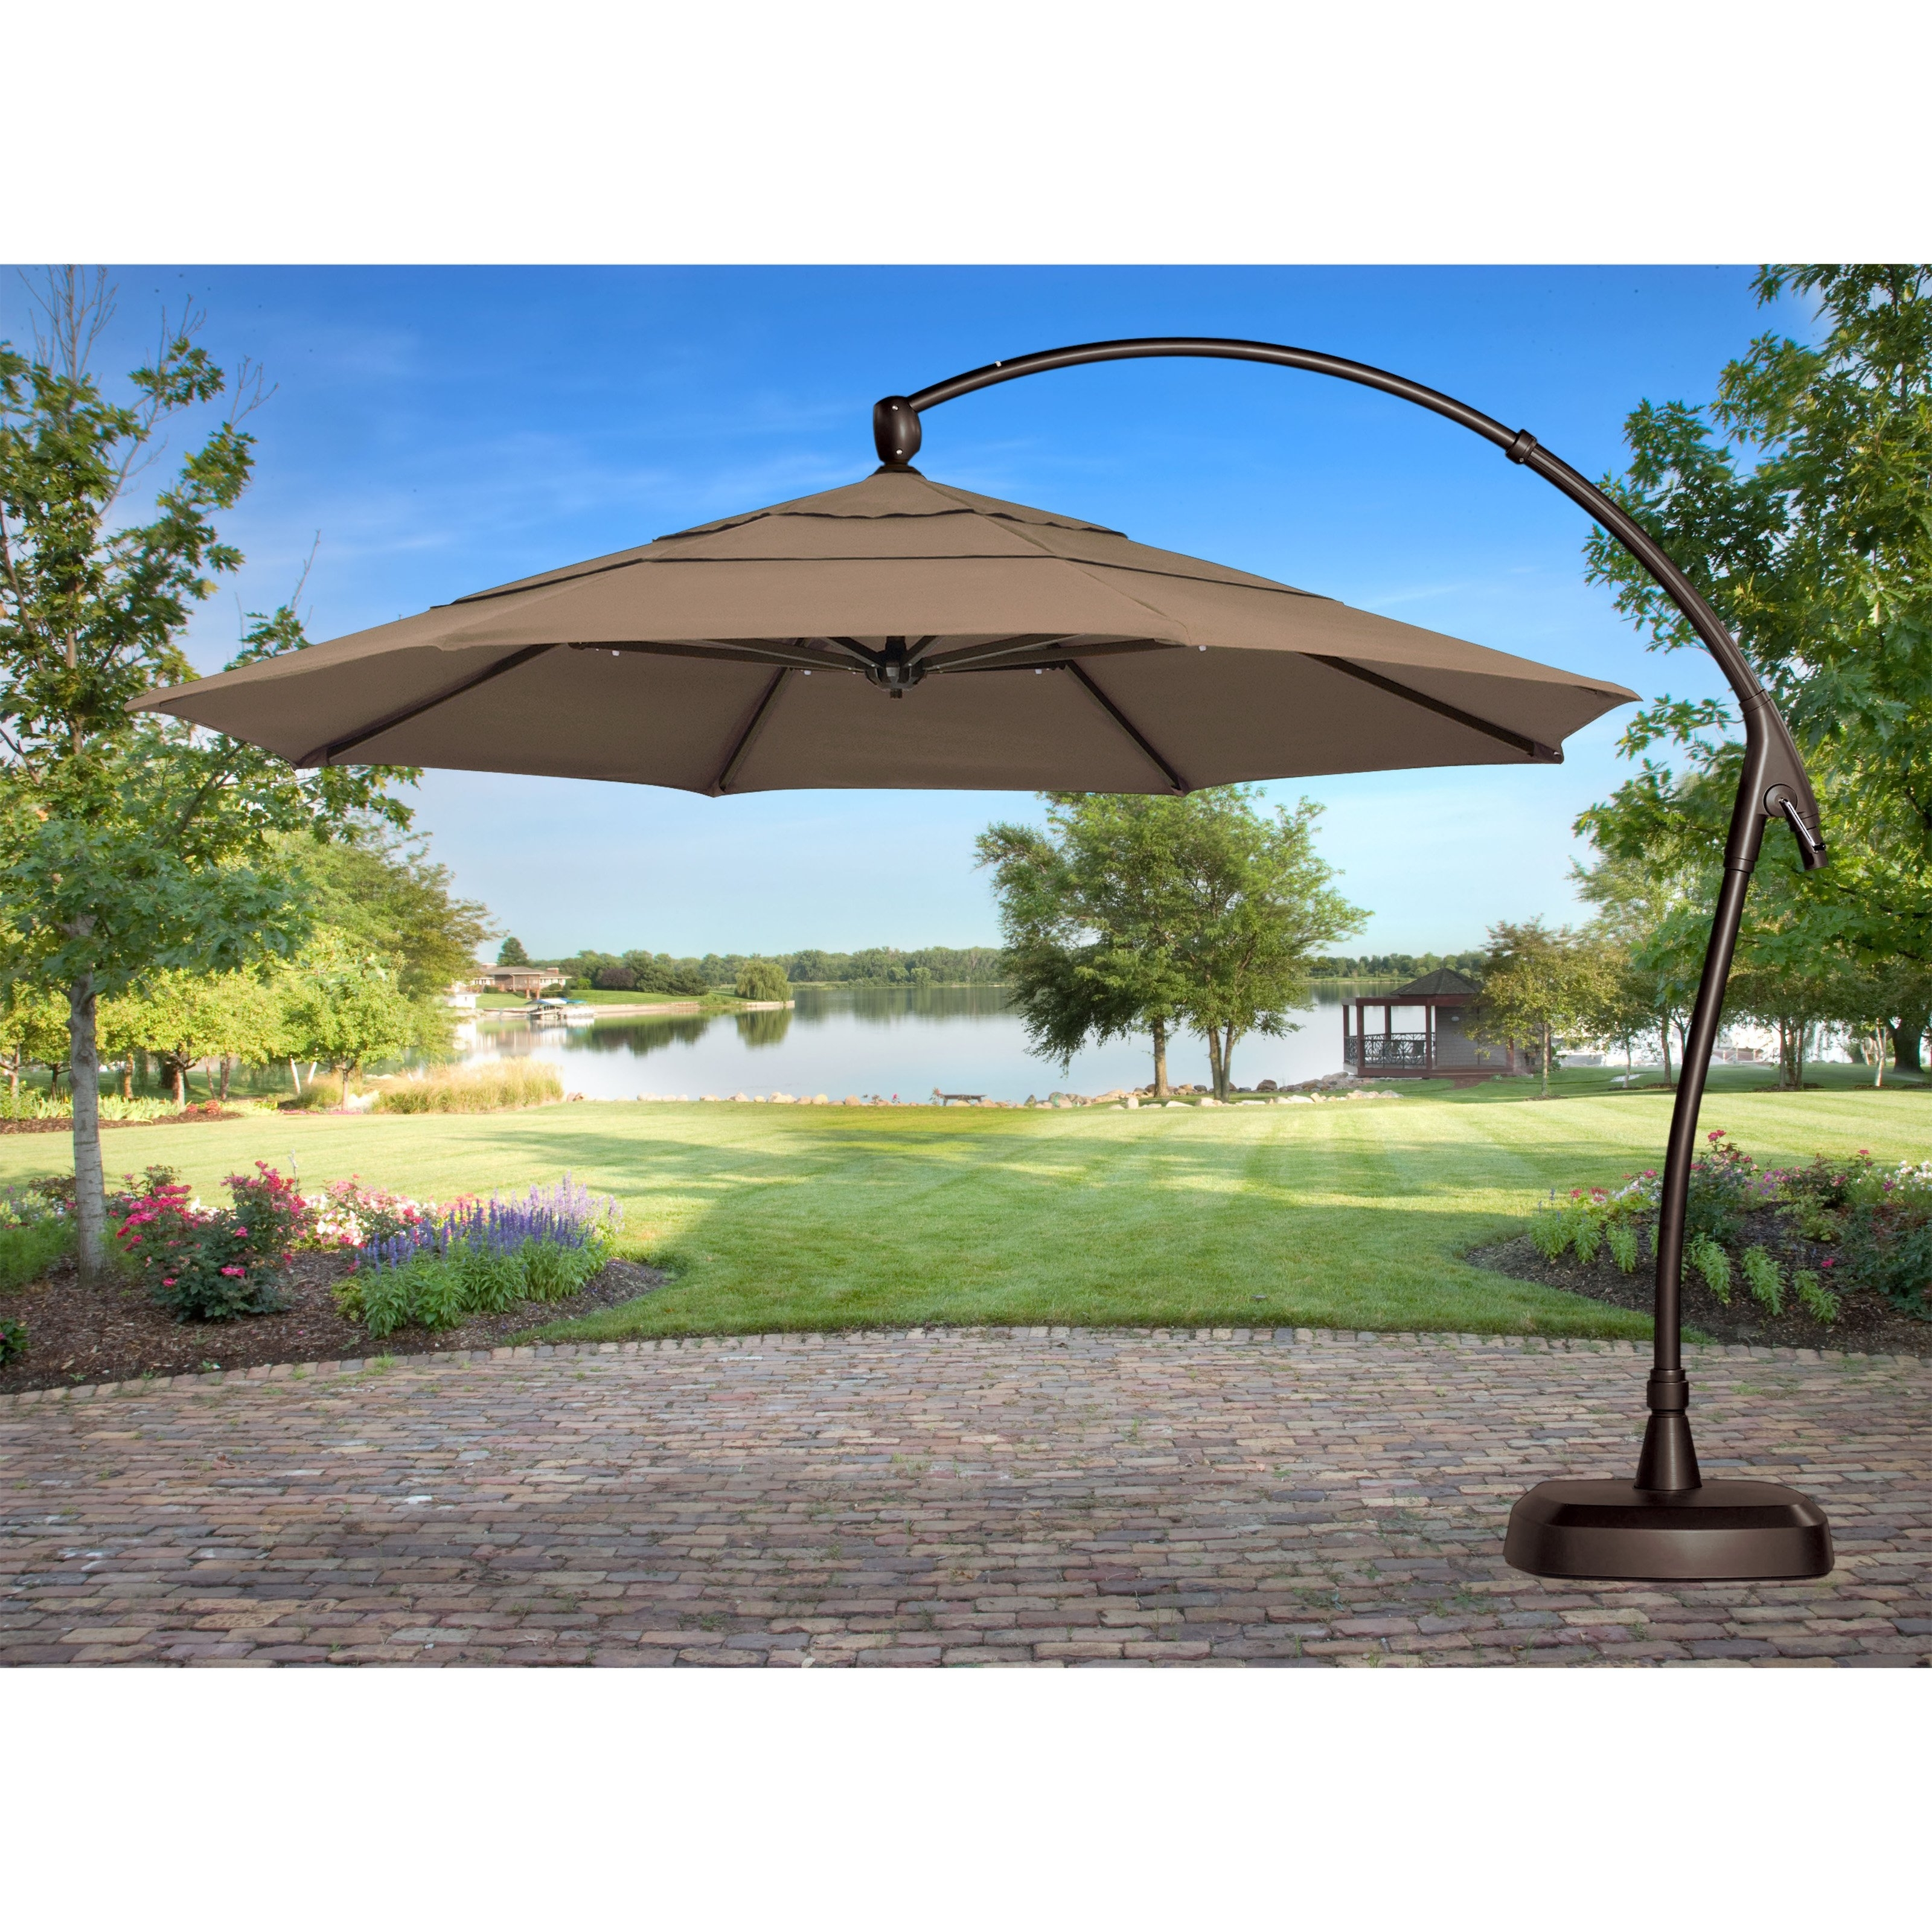 Patio Umbrellas From Costco Inside 2018 Furniture: Costco Cantilever Umbrella For Most Dramatic Shade (View 18 of 20)